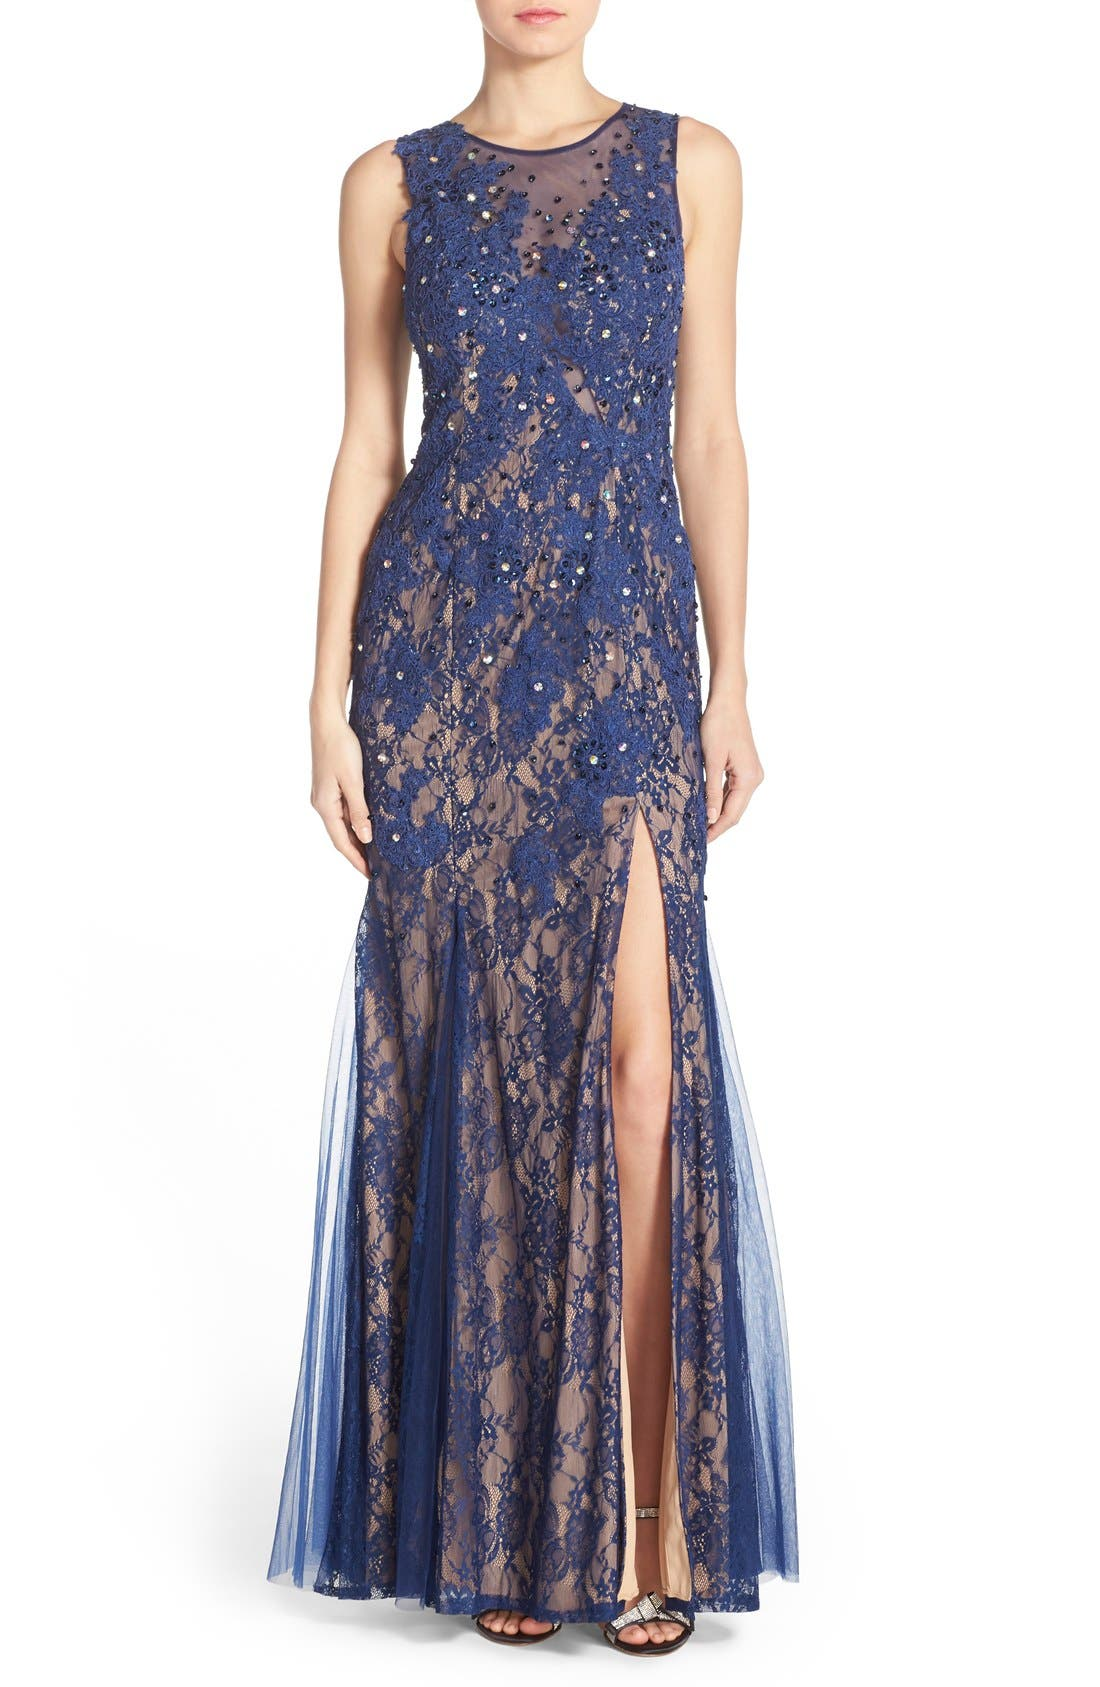 Main Image - Sean Collection Embellished Lace Gown